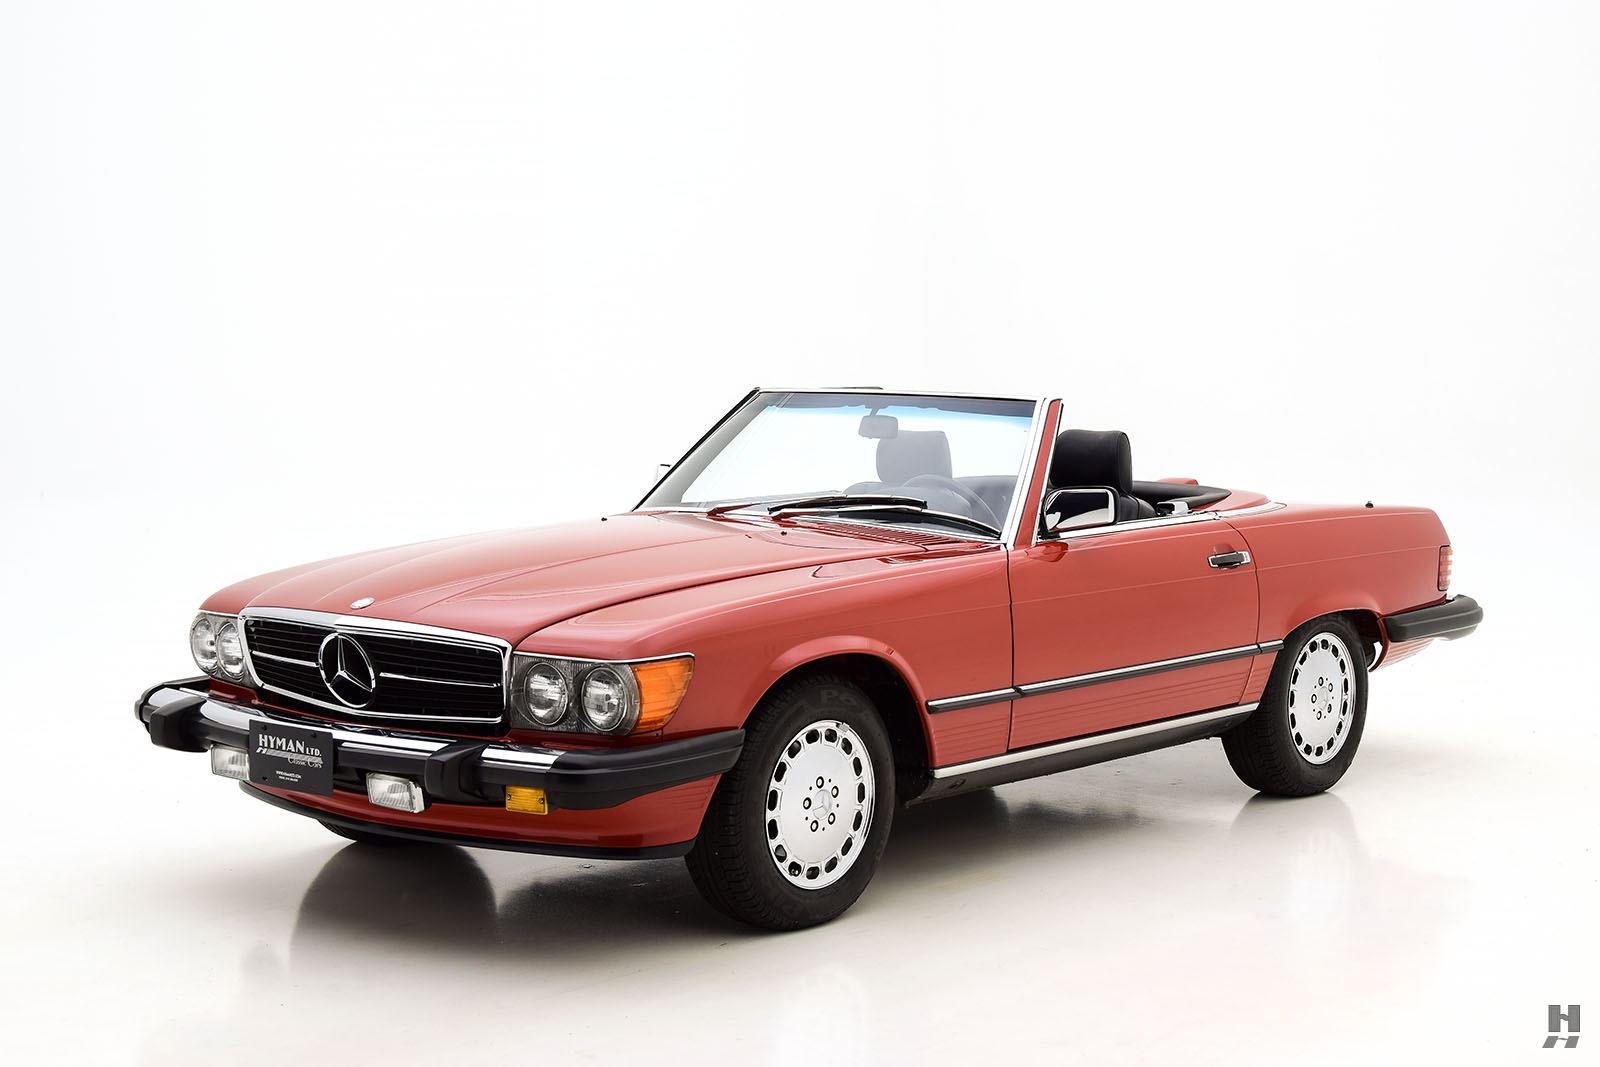 1987 mercedes benz 560sl convertible for sale classic cars hyman ltd. Black Bedroom Furniture Sets. Home Design Ideas